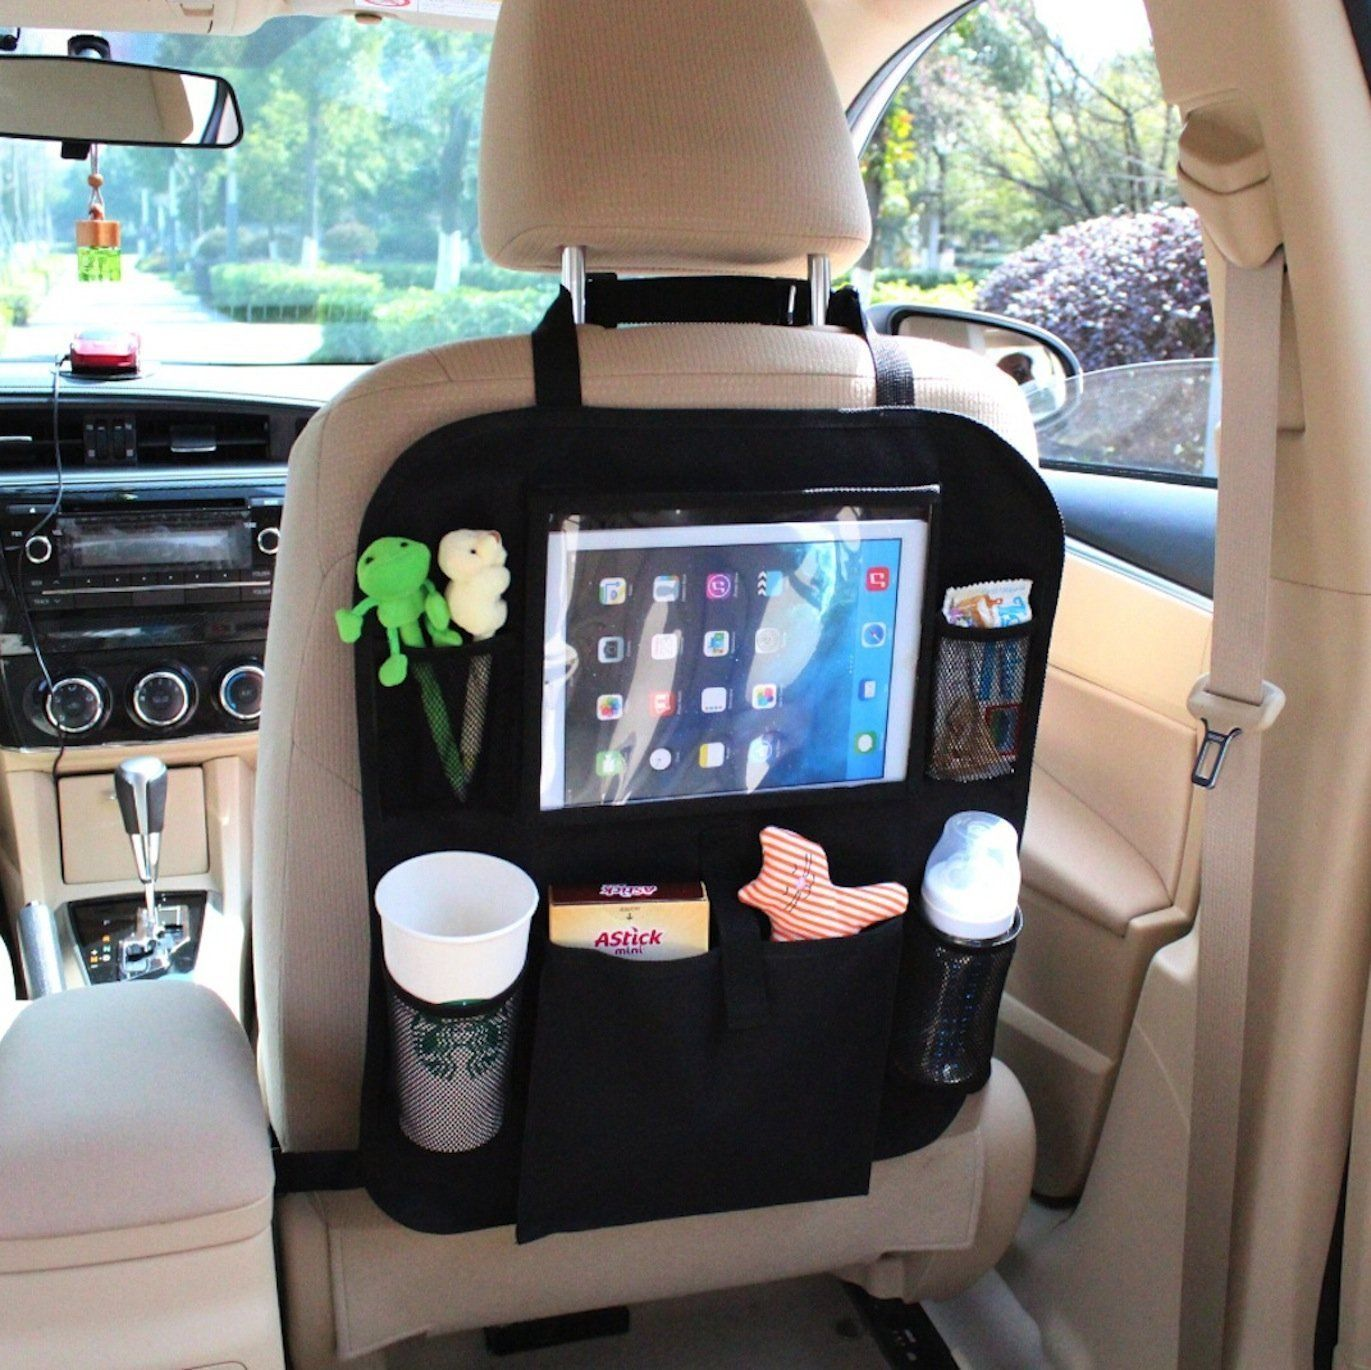 Auto Organizer Tablet Amazonsmile Car Organizer By Automuko Ipad And Tablet Holder With